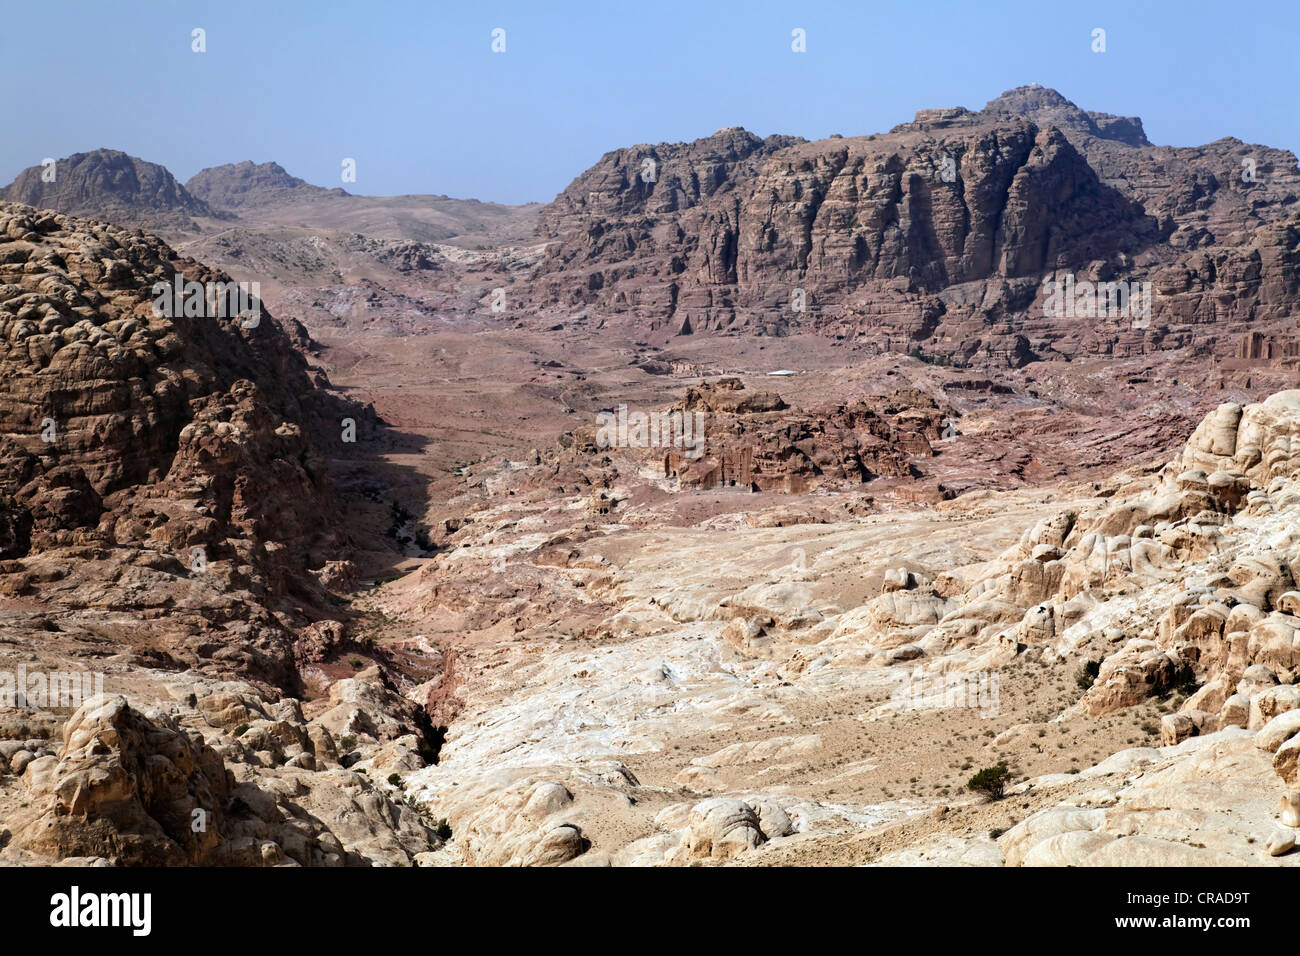 Valley of Petra, the capital city of the Nabataeans, rock city, UNESCO World Hertage Site, Wadi Musa - Stock Image